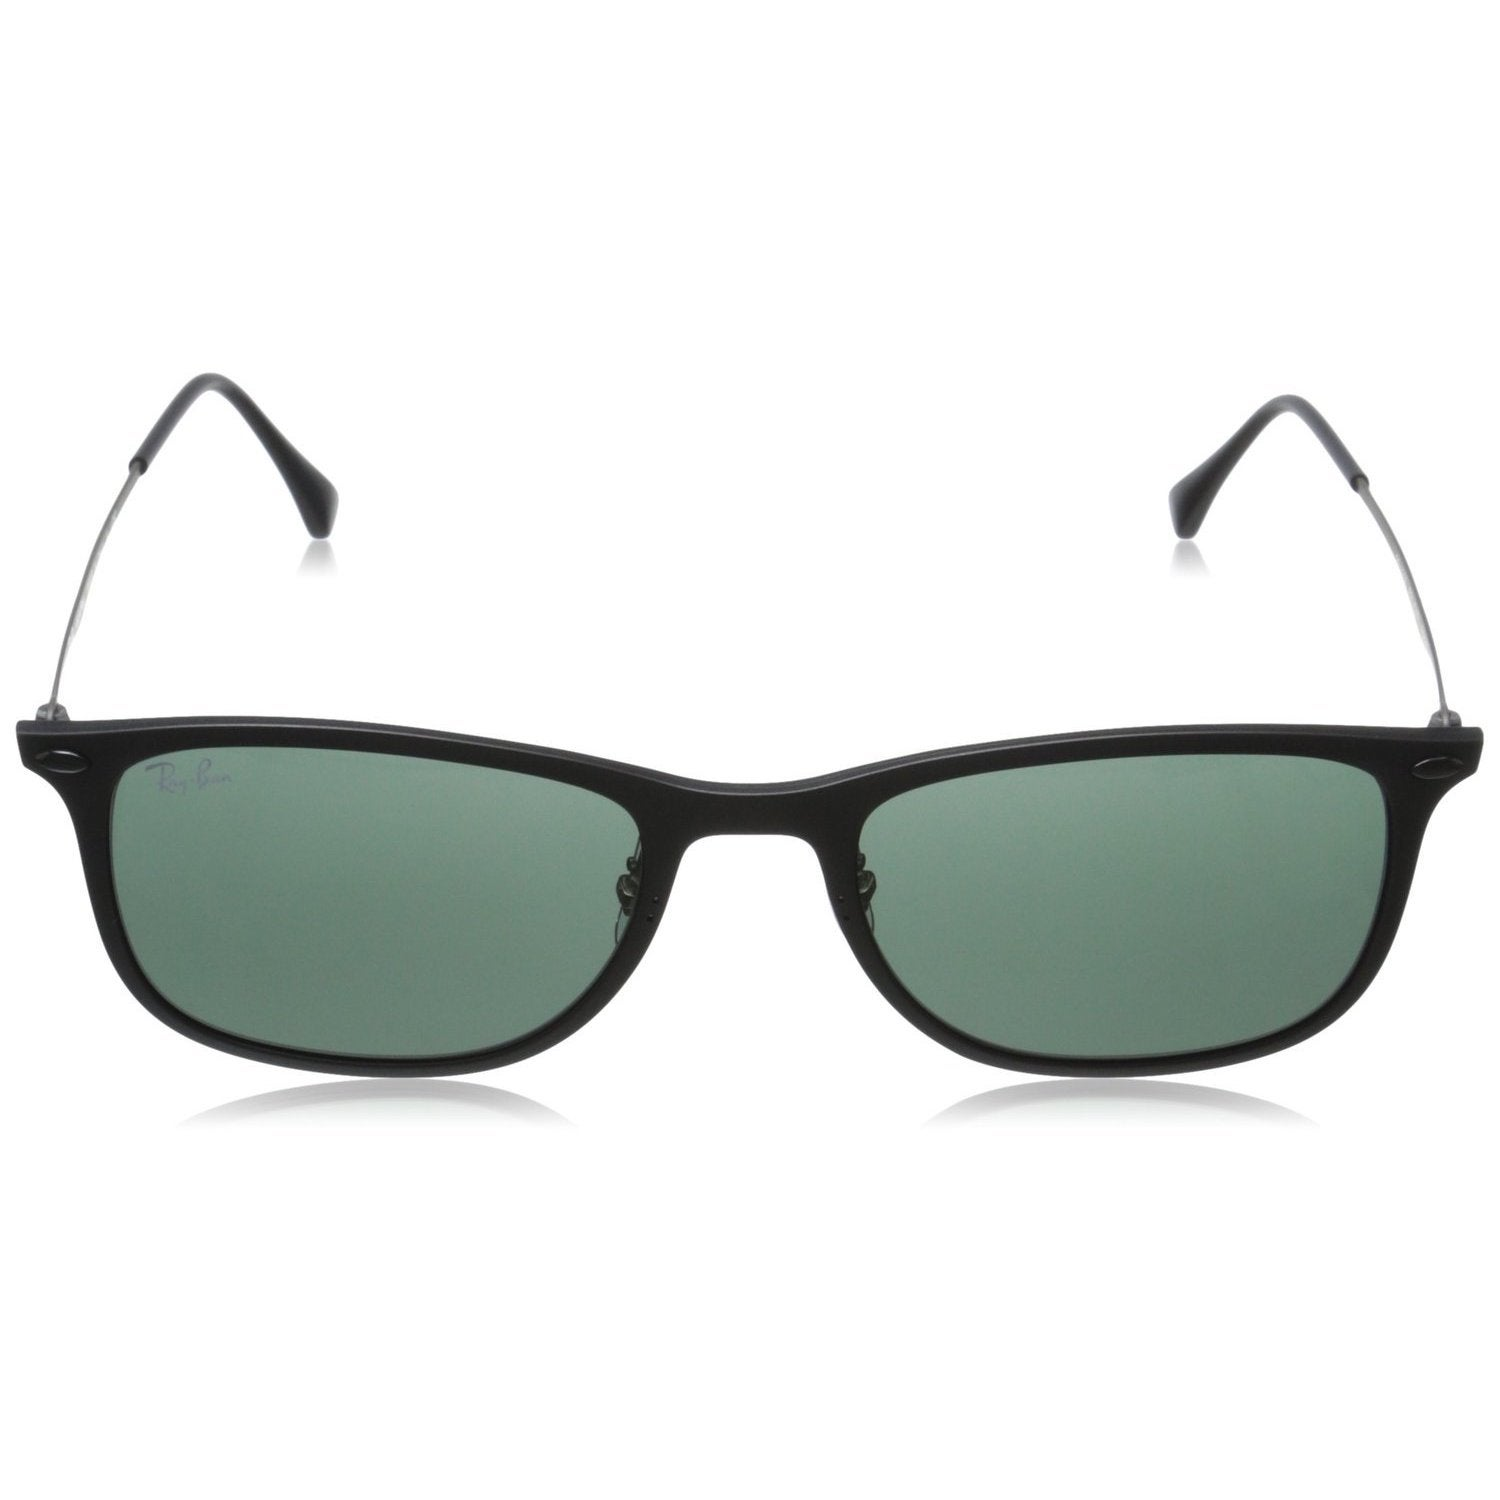 f5fc6f4511 Shop Ray-Ban RB4225 601S71 New Wayfarer Light Ray Unisex Black Frame Green  Classic 52mm Lens Sunglasses - Free Shipping Today - Overstock - 11118534